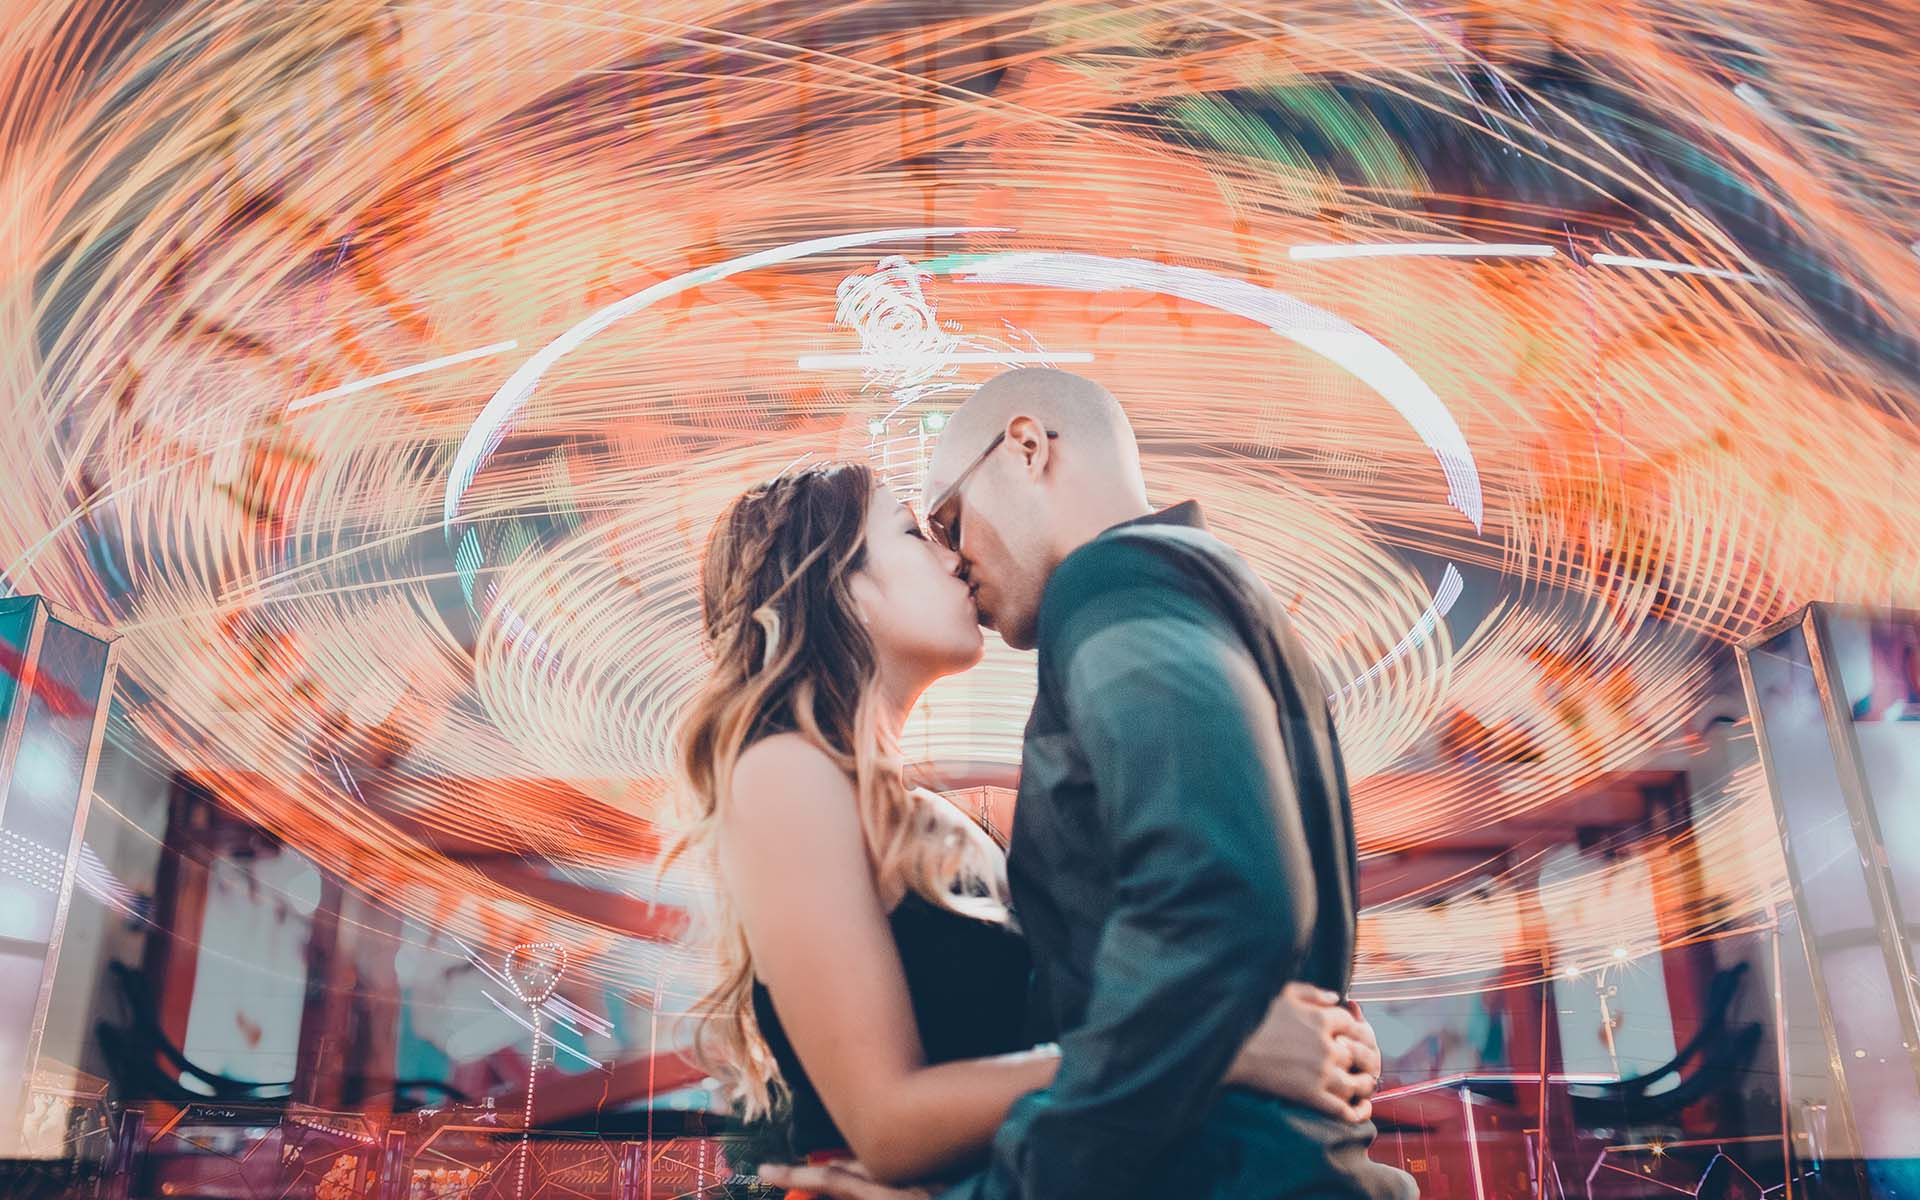 Orange County Fair engagement session with slow shutter effect creating light painting rides